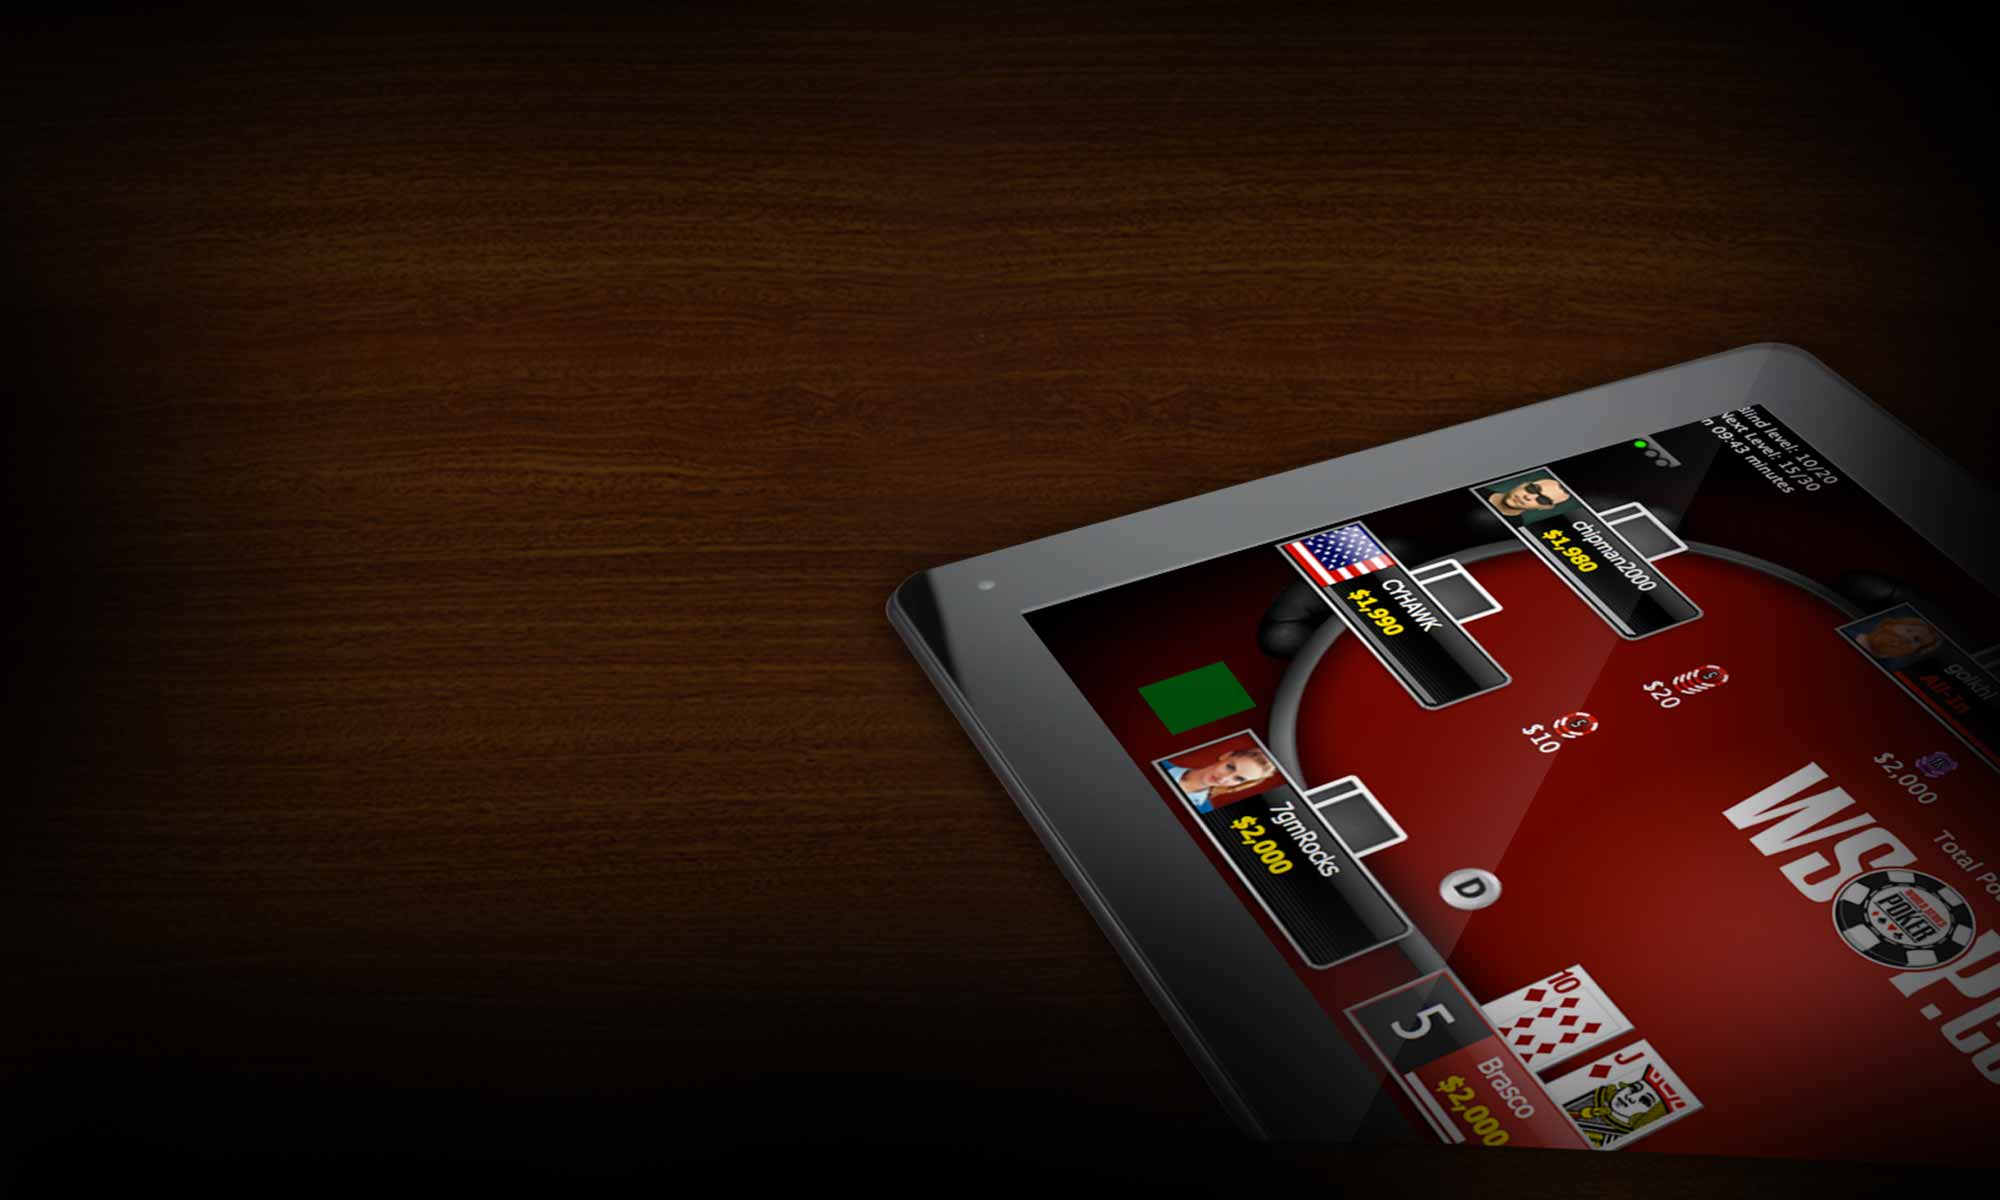 WSOP.com mobile poker